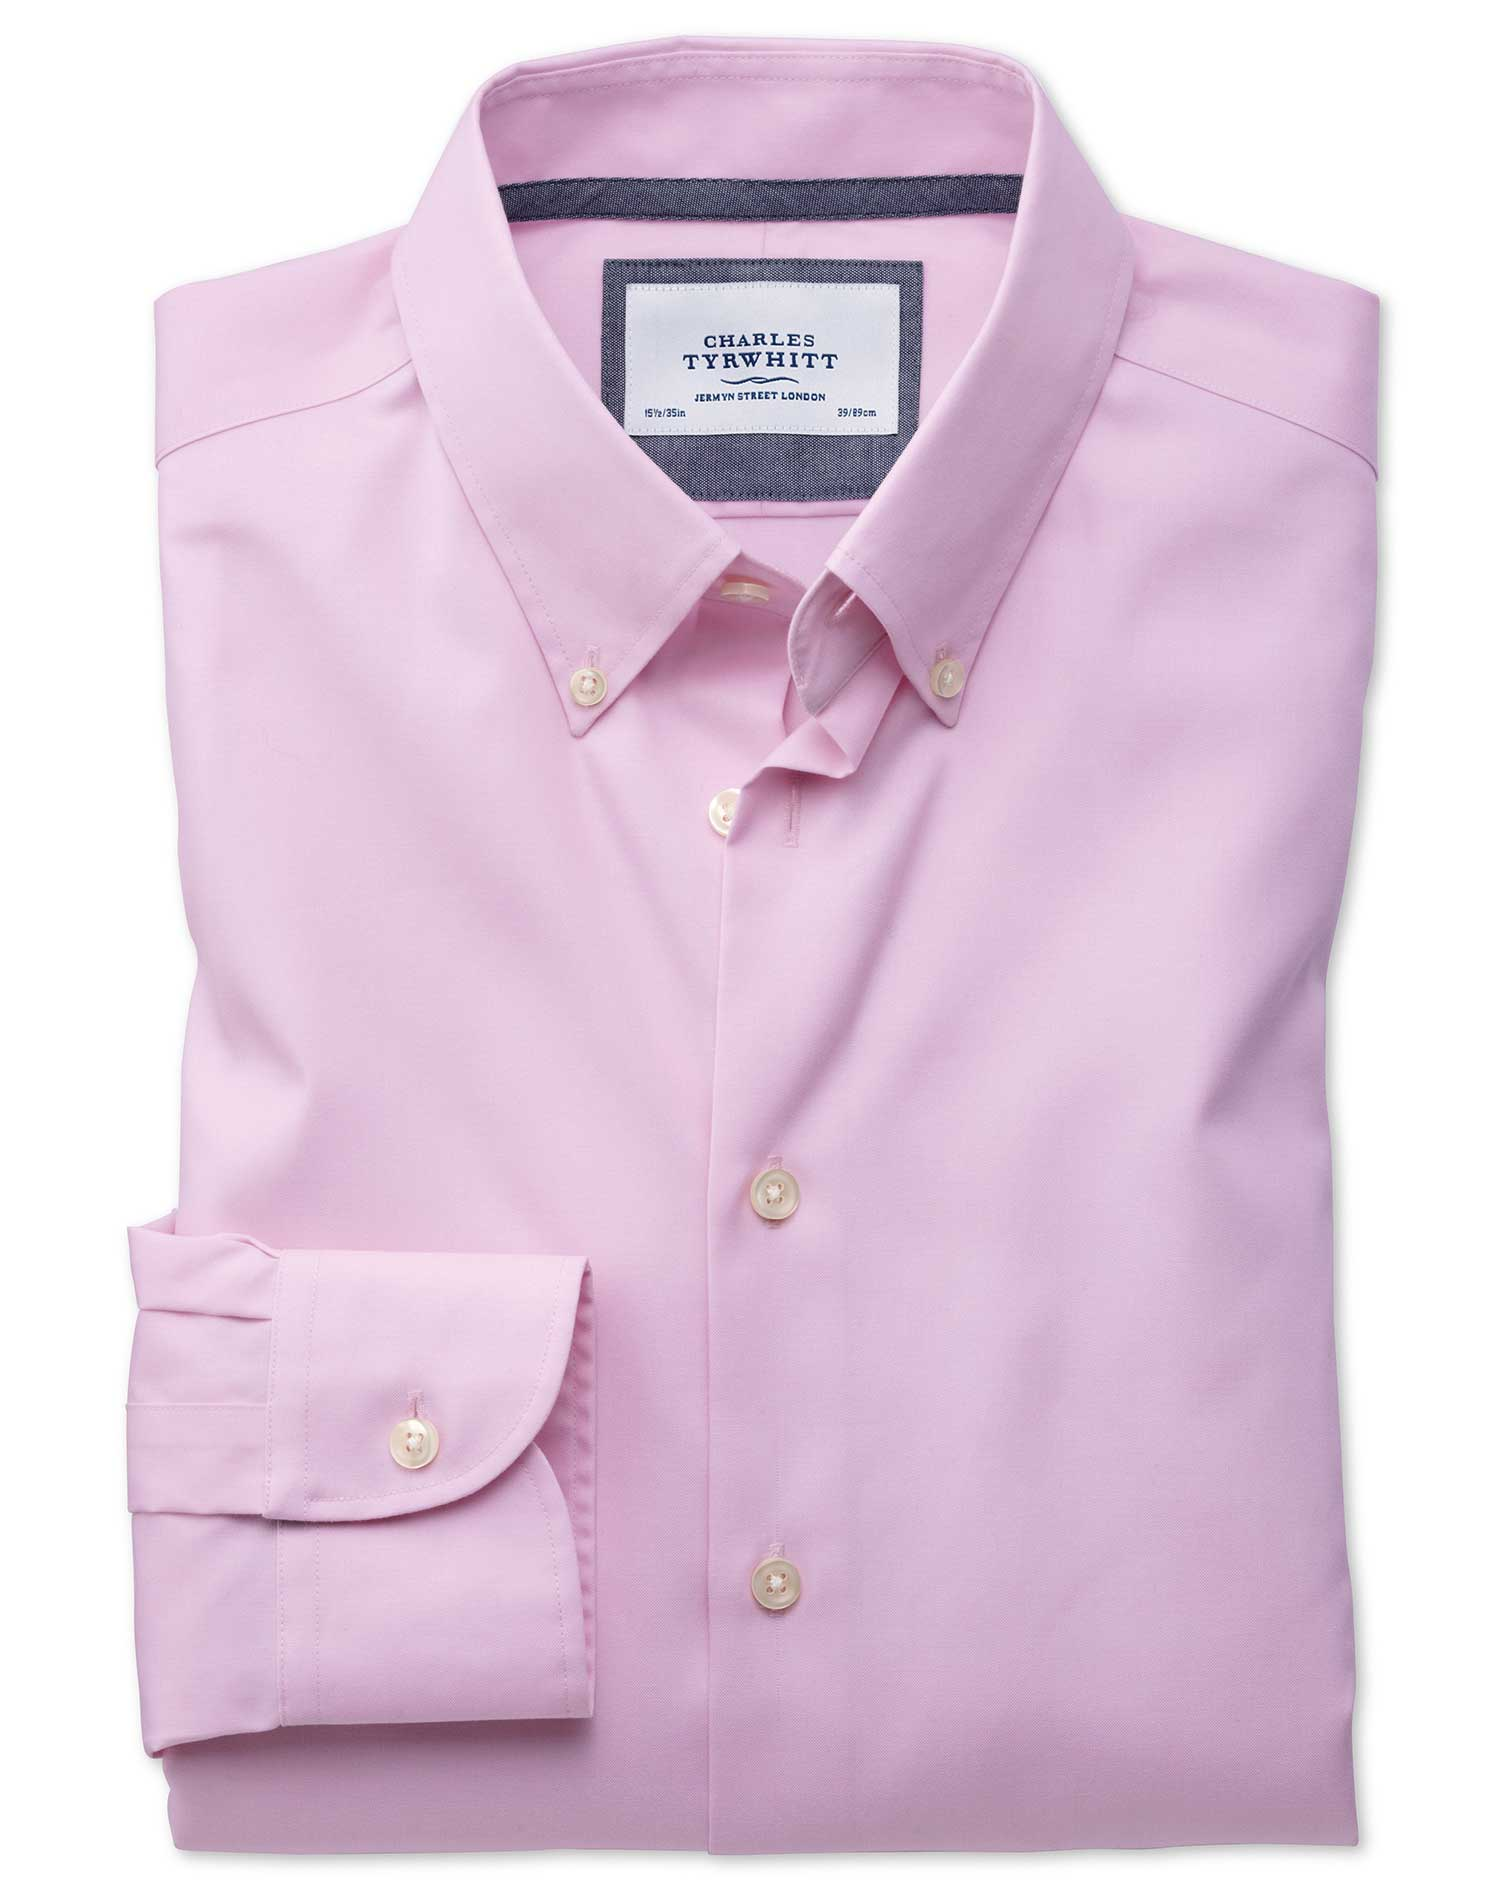 Slim Fit Button-Down Business Casual Non-Iron Light Pink Cotton Formal Shirt Single Cuff Size 17/33